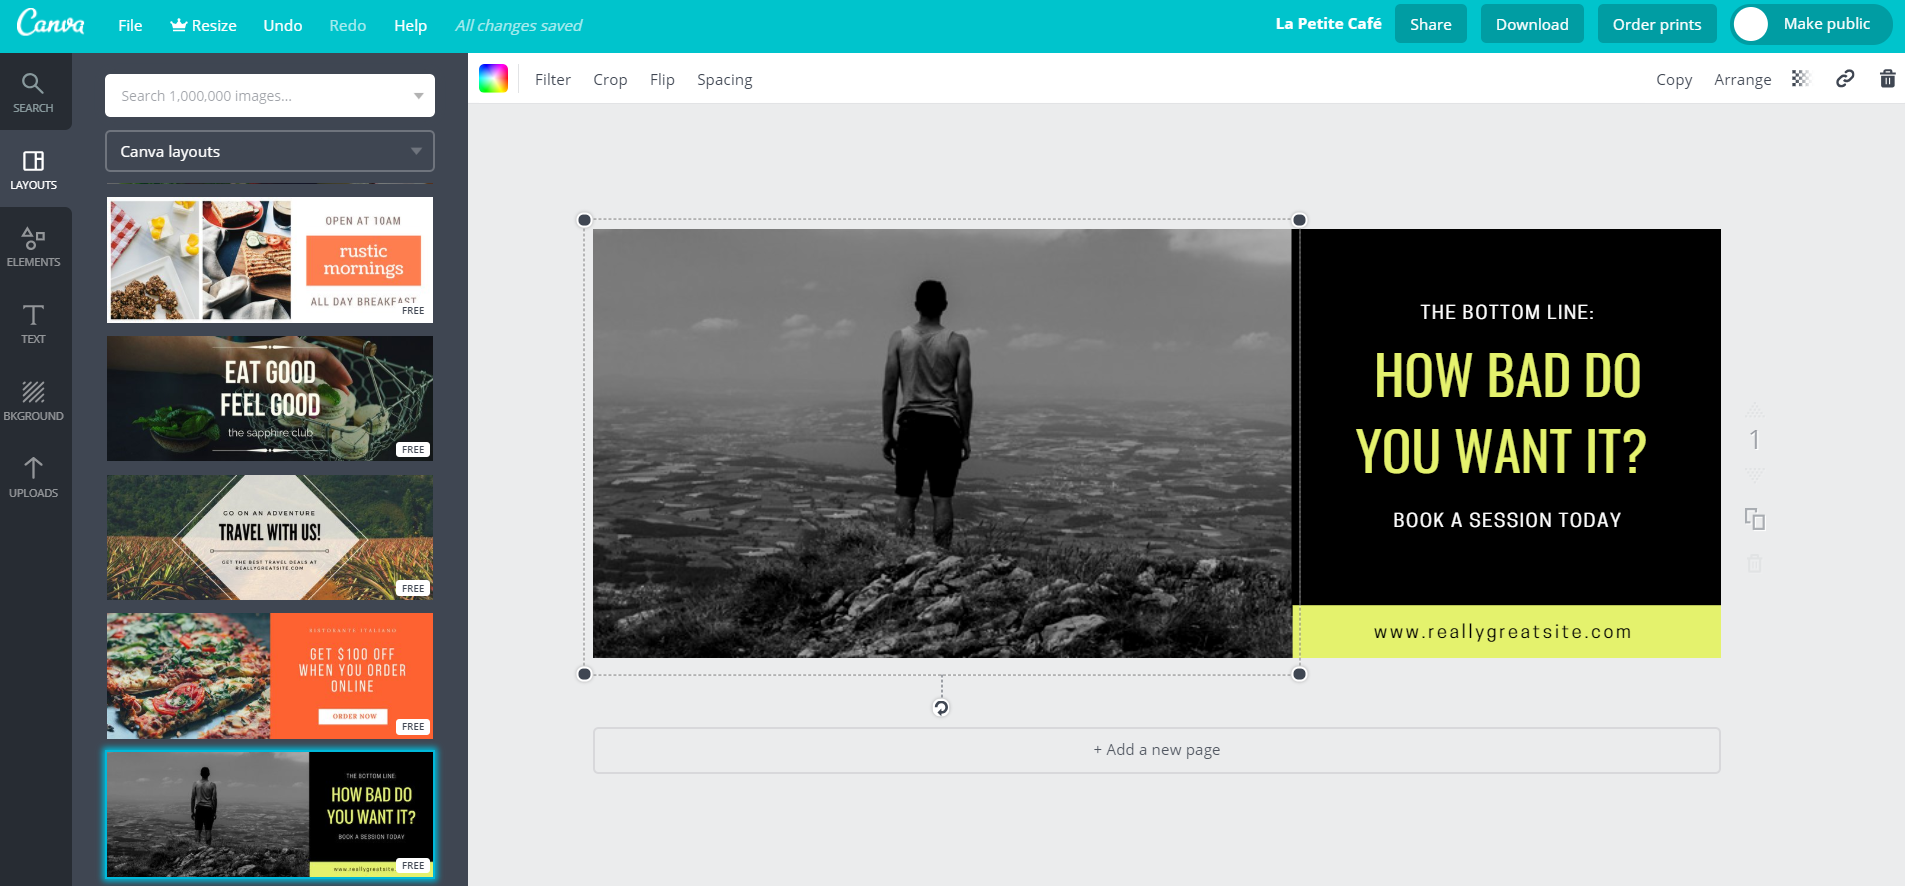 Tools like Canva allow you to whip up optimized social pictures in no time flat